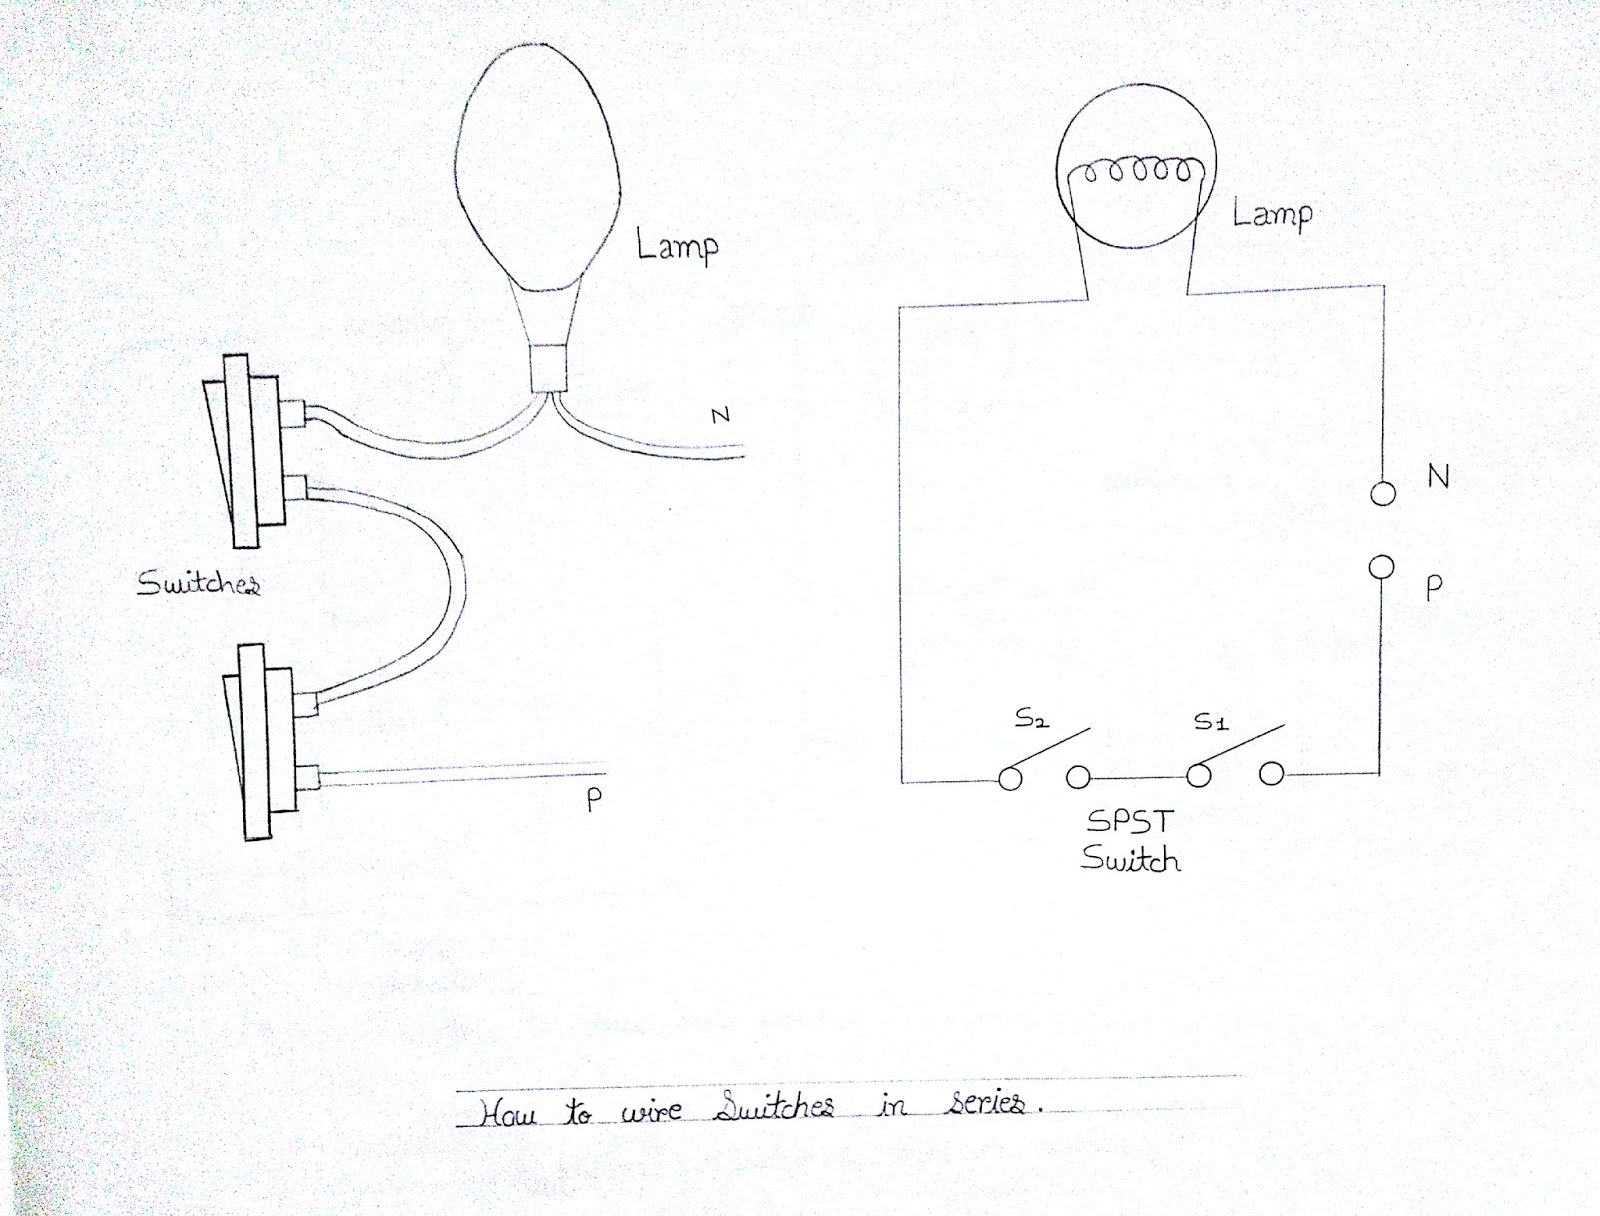 Parallel connection diagram of 2 S.P.Switches with 1 Bulb